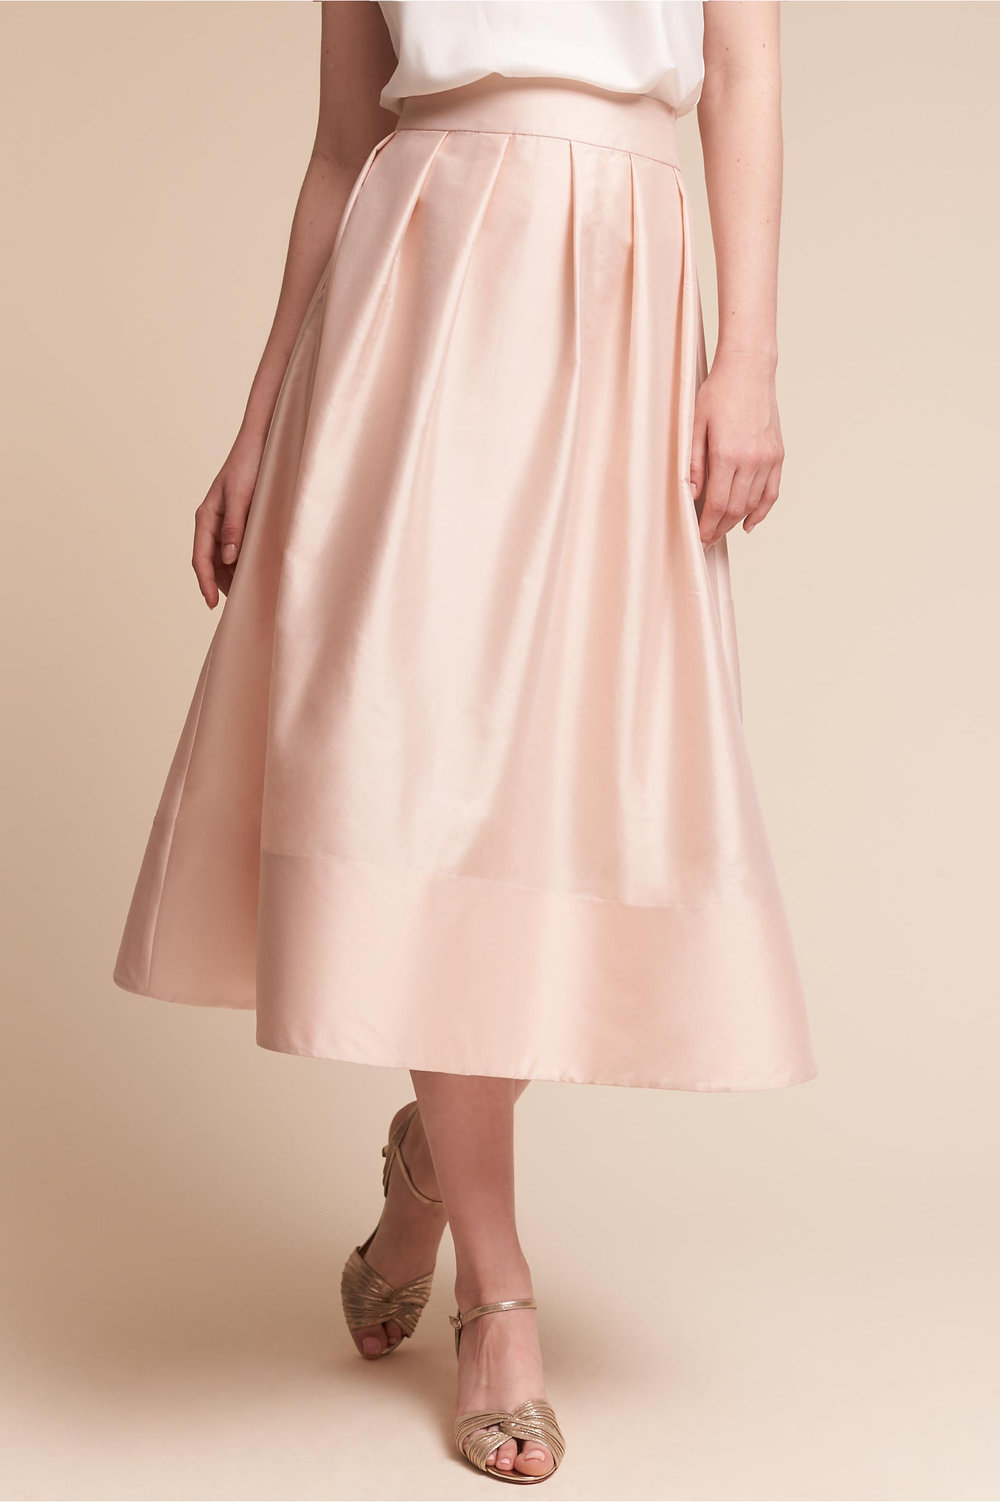 Rockport Skirt - Think outside the (dress) box and consider a beautiful skirt! Bridesmaids can pair with their own strappy tank to complete the look.Price: Retail $160, now just $60 on BHLDN (hurry! sizes limited)